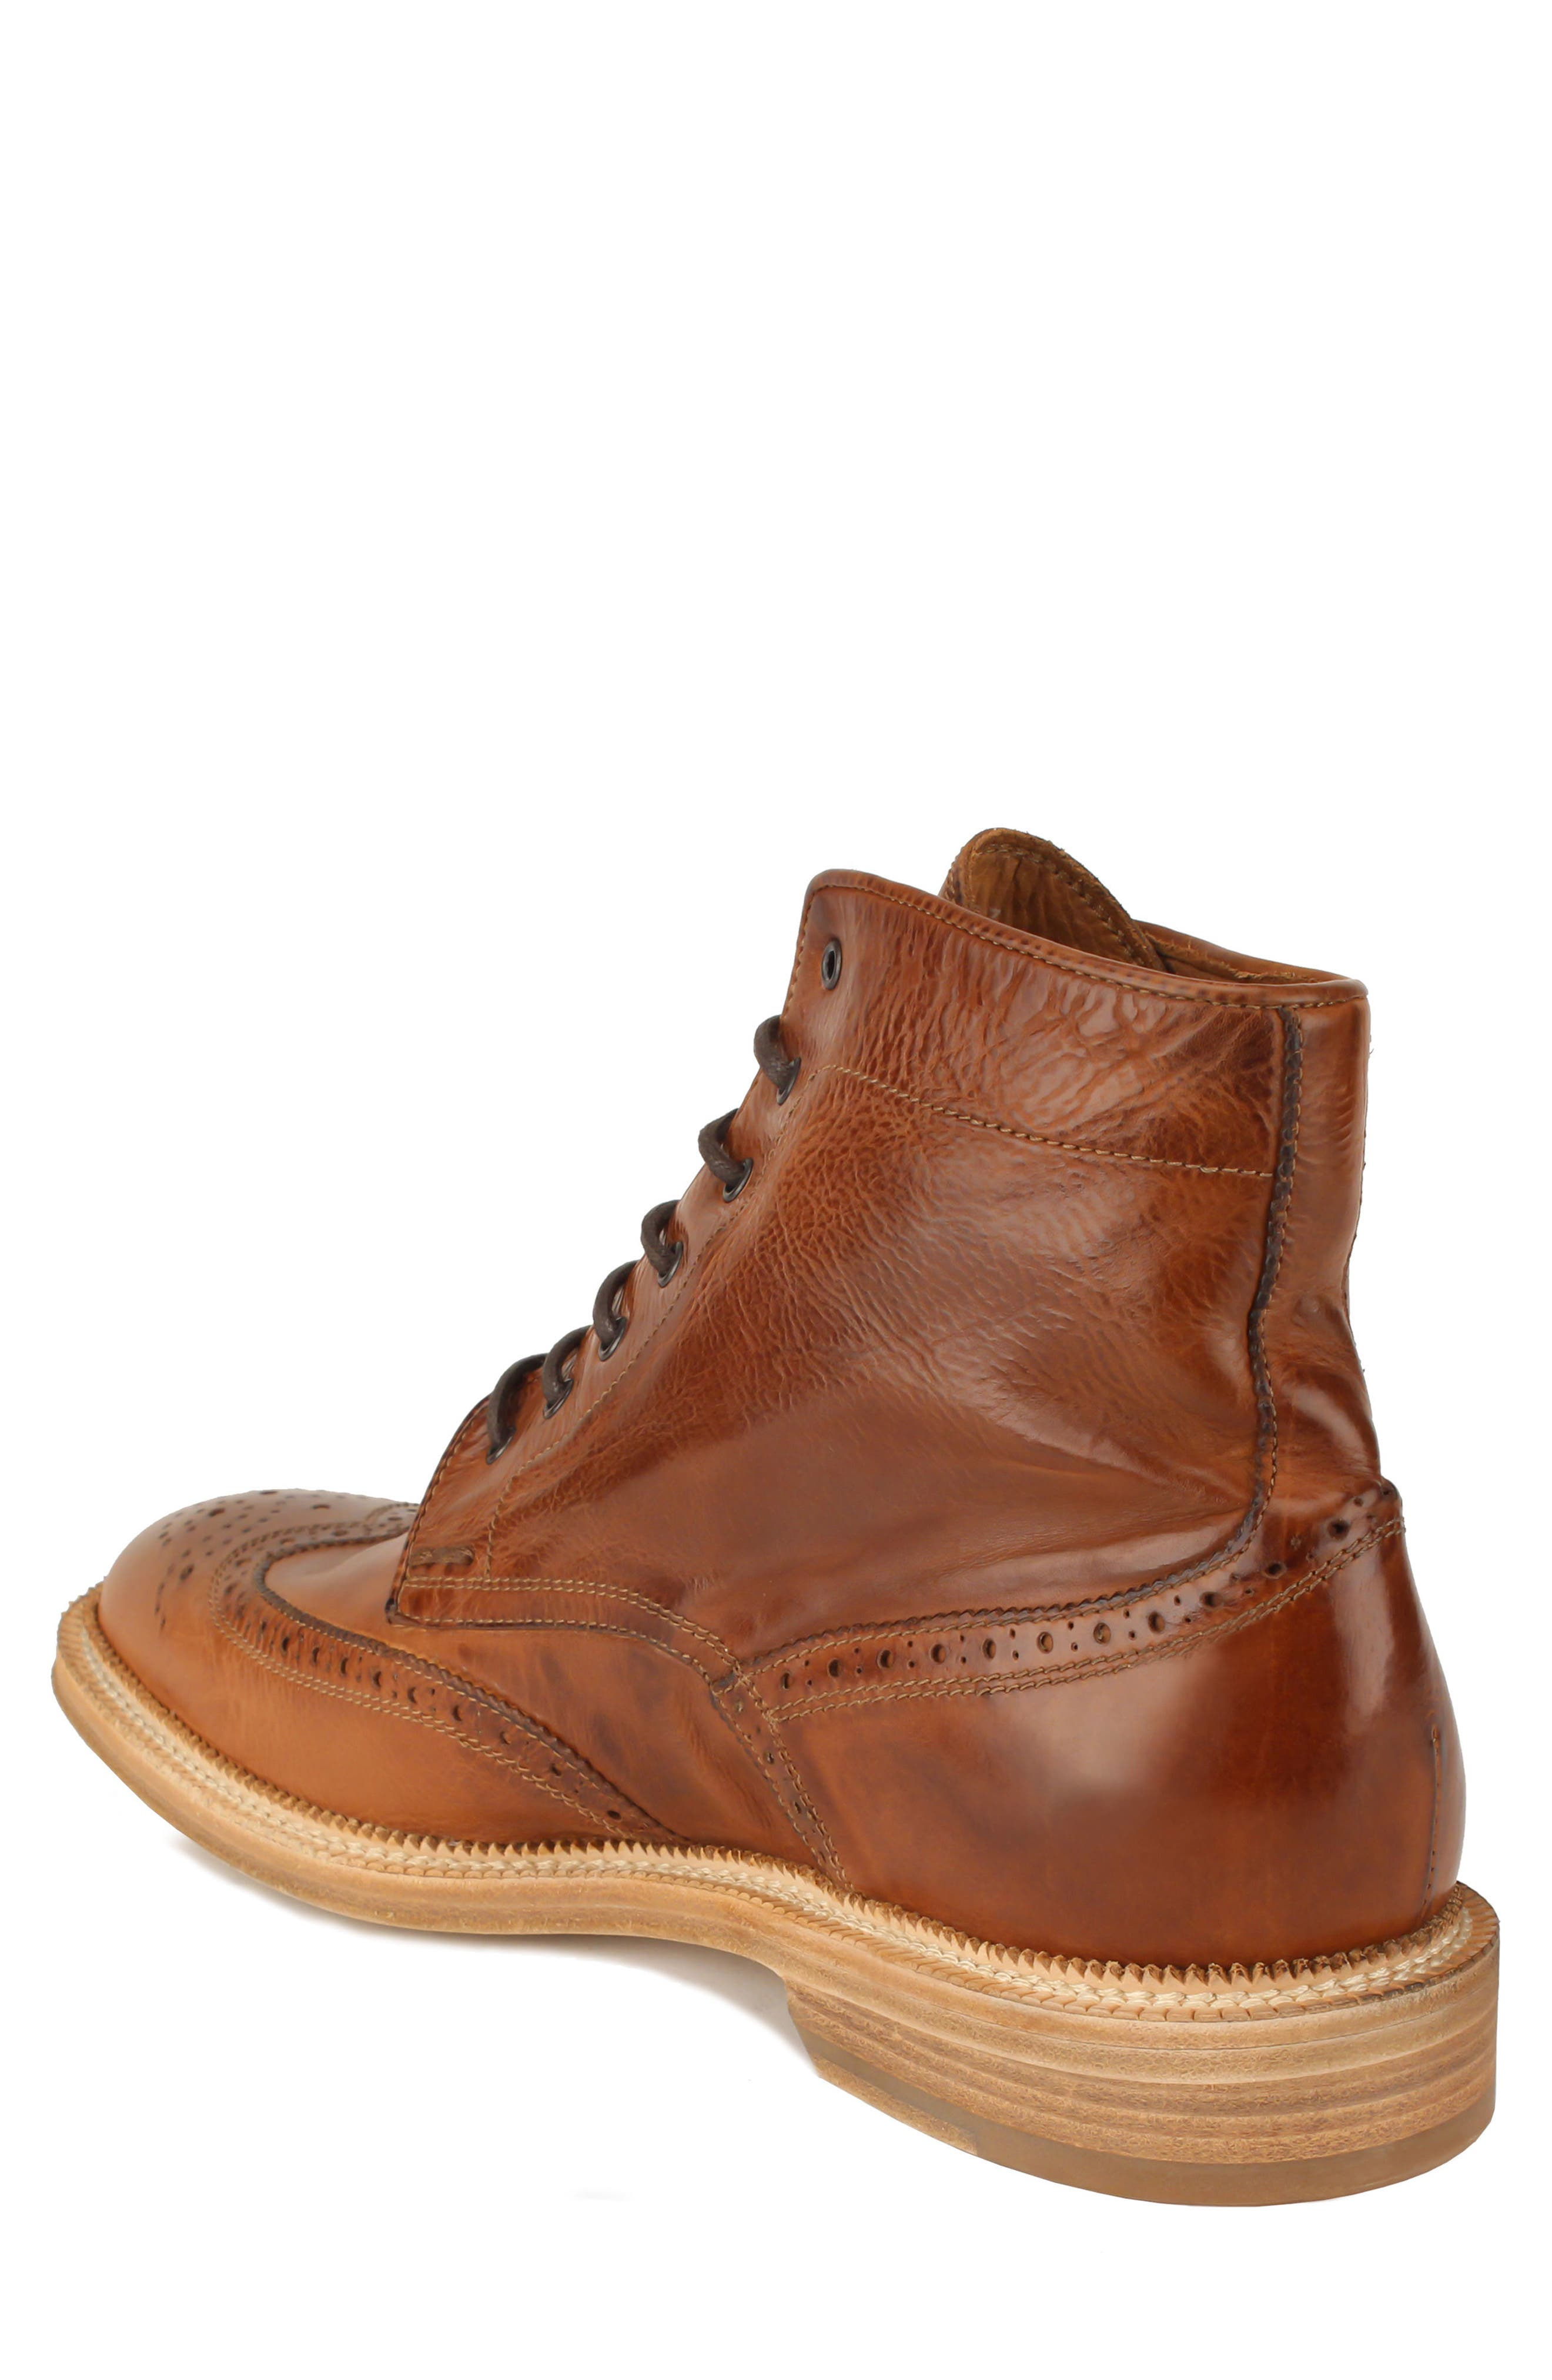 Max Wingtip Boot,                             Alternate thumbnail 2, color,                             WALNUT LEATHER